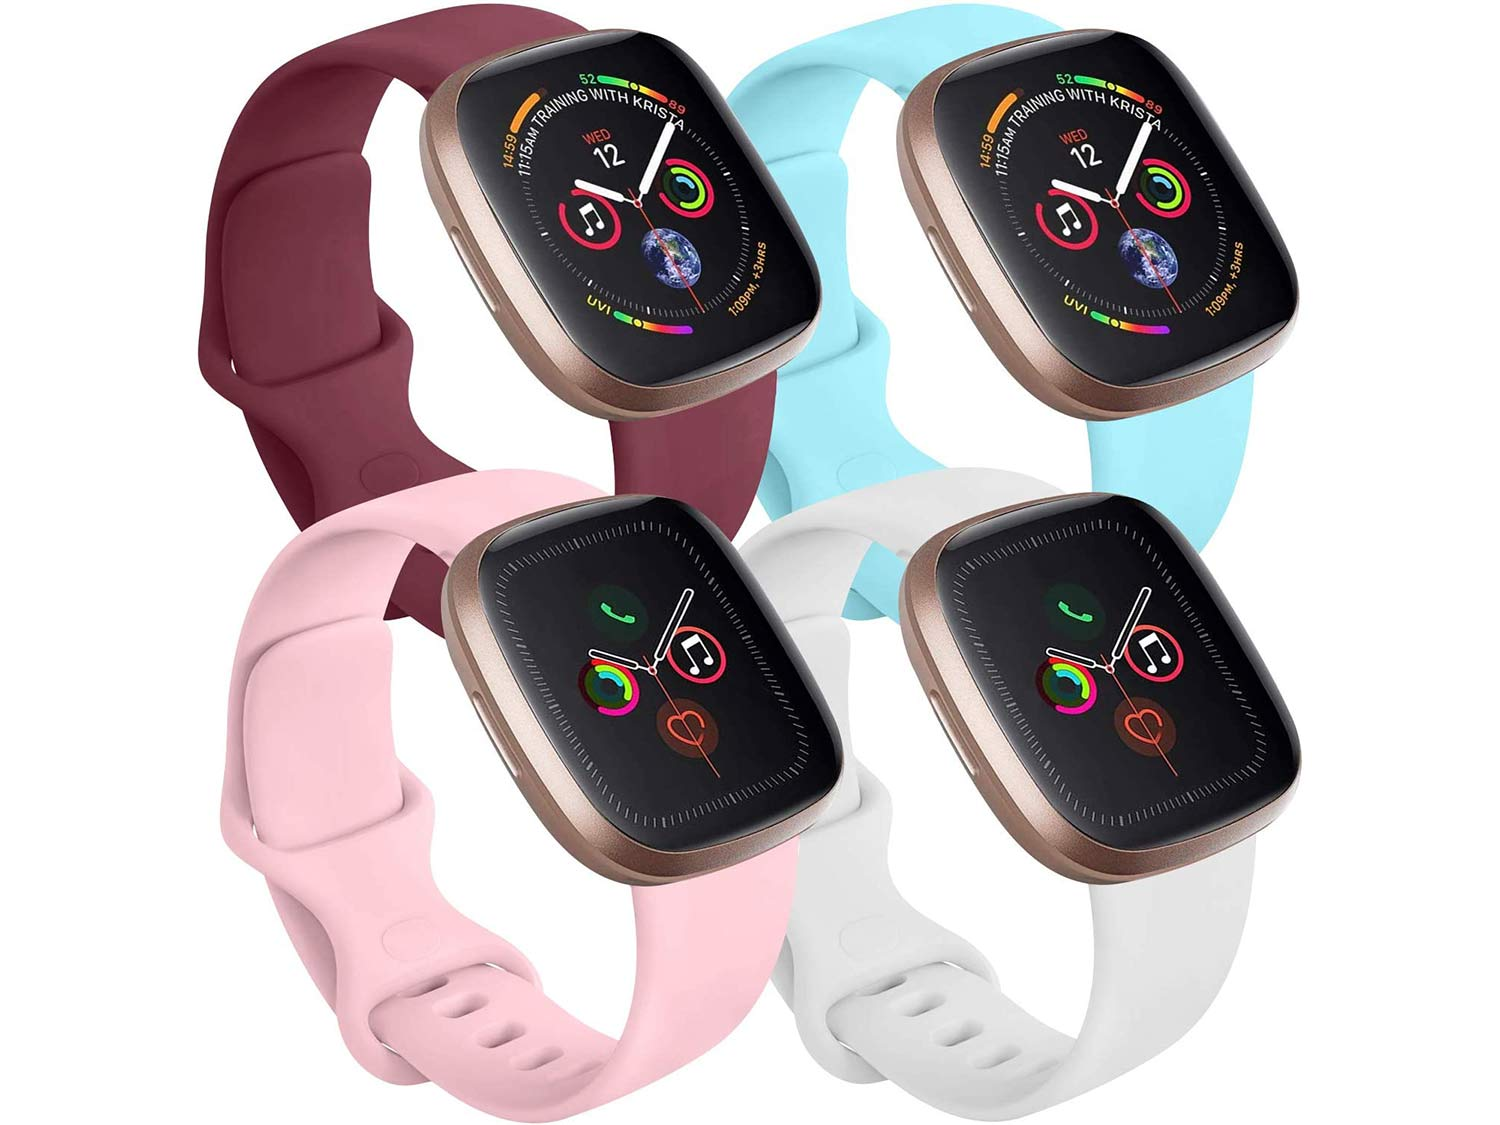 Tobfit 4 Pack Compatible with Apple Watch Band 38mm 42mm 40mm 44mm, Soft Silicone Replacement Band Compatible with iWatch Series 6 5 4 3 SE (Wine Red/White/Pink/Light Blue, 38mm/40mm S/M)